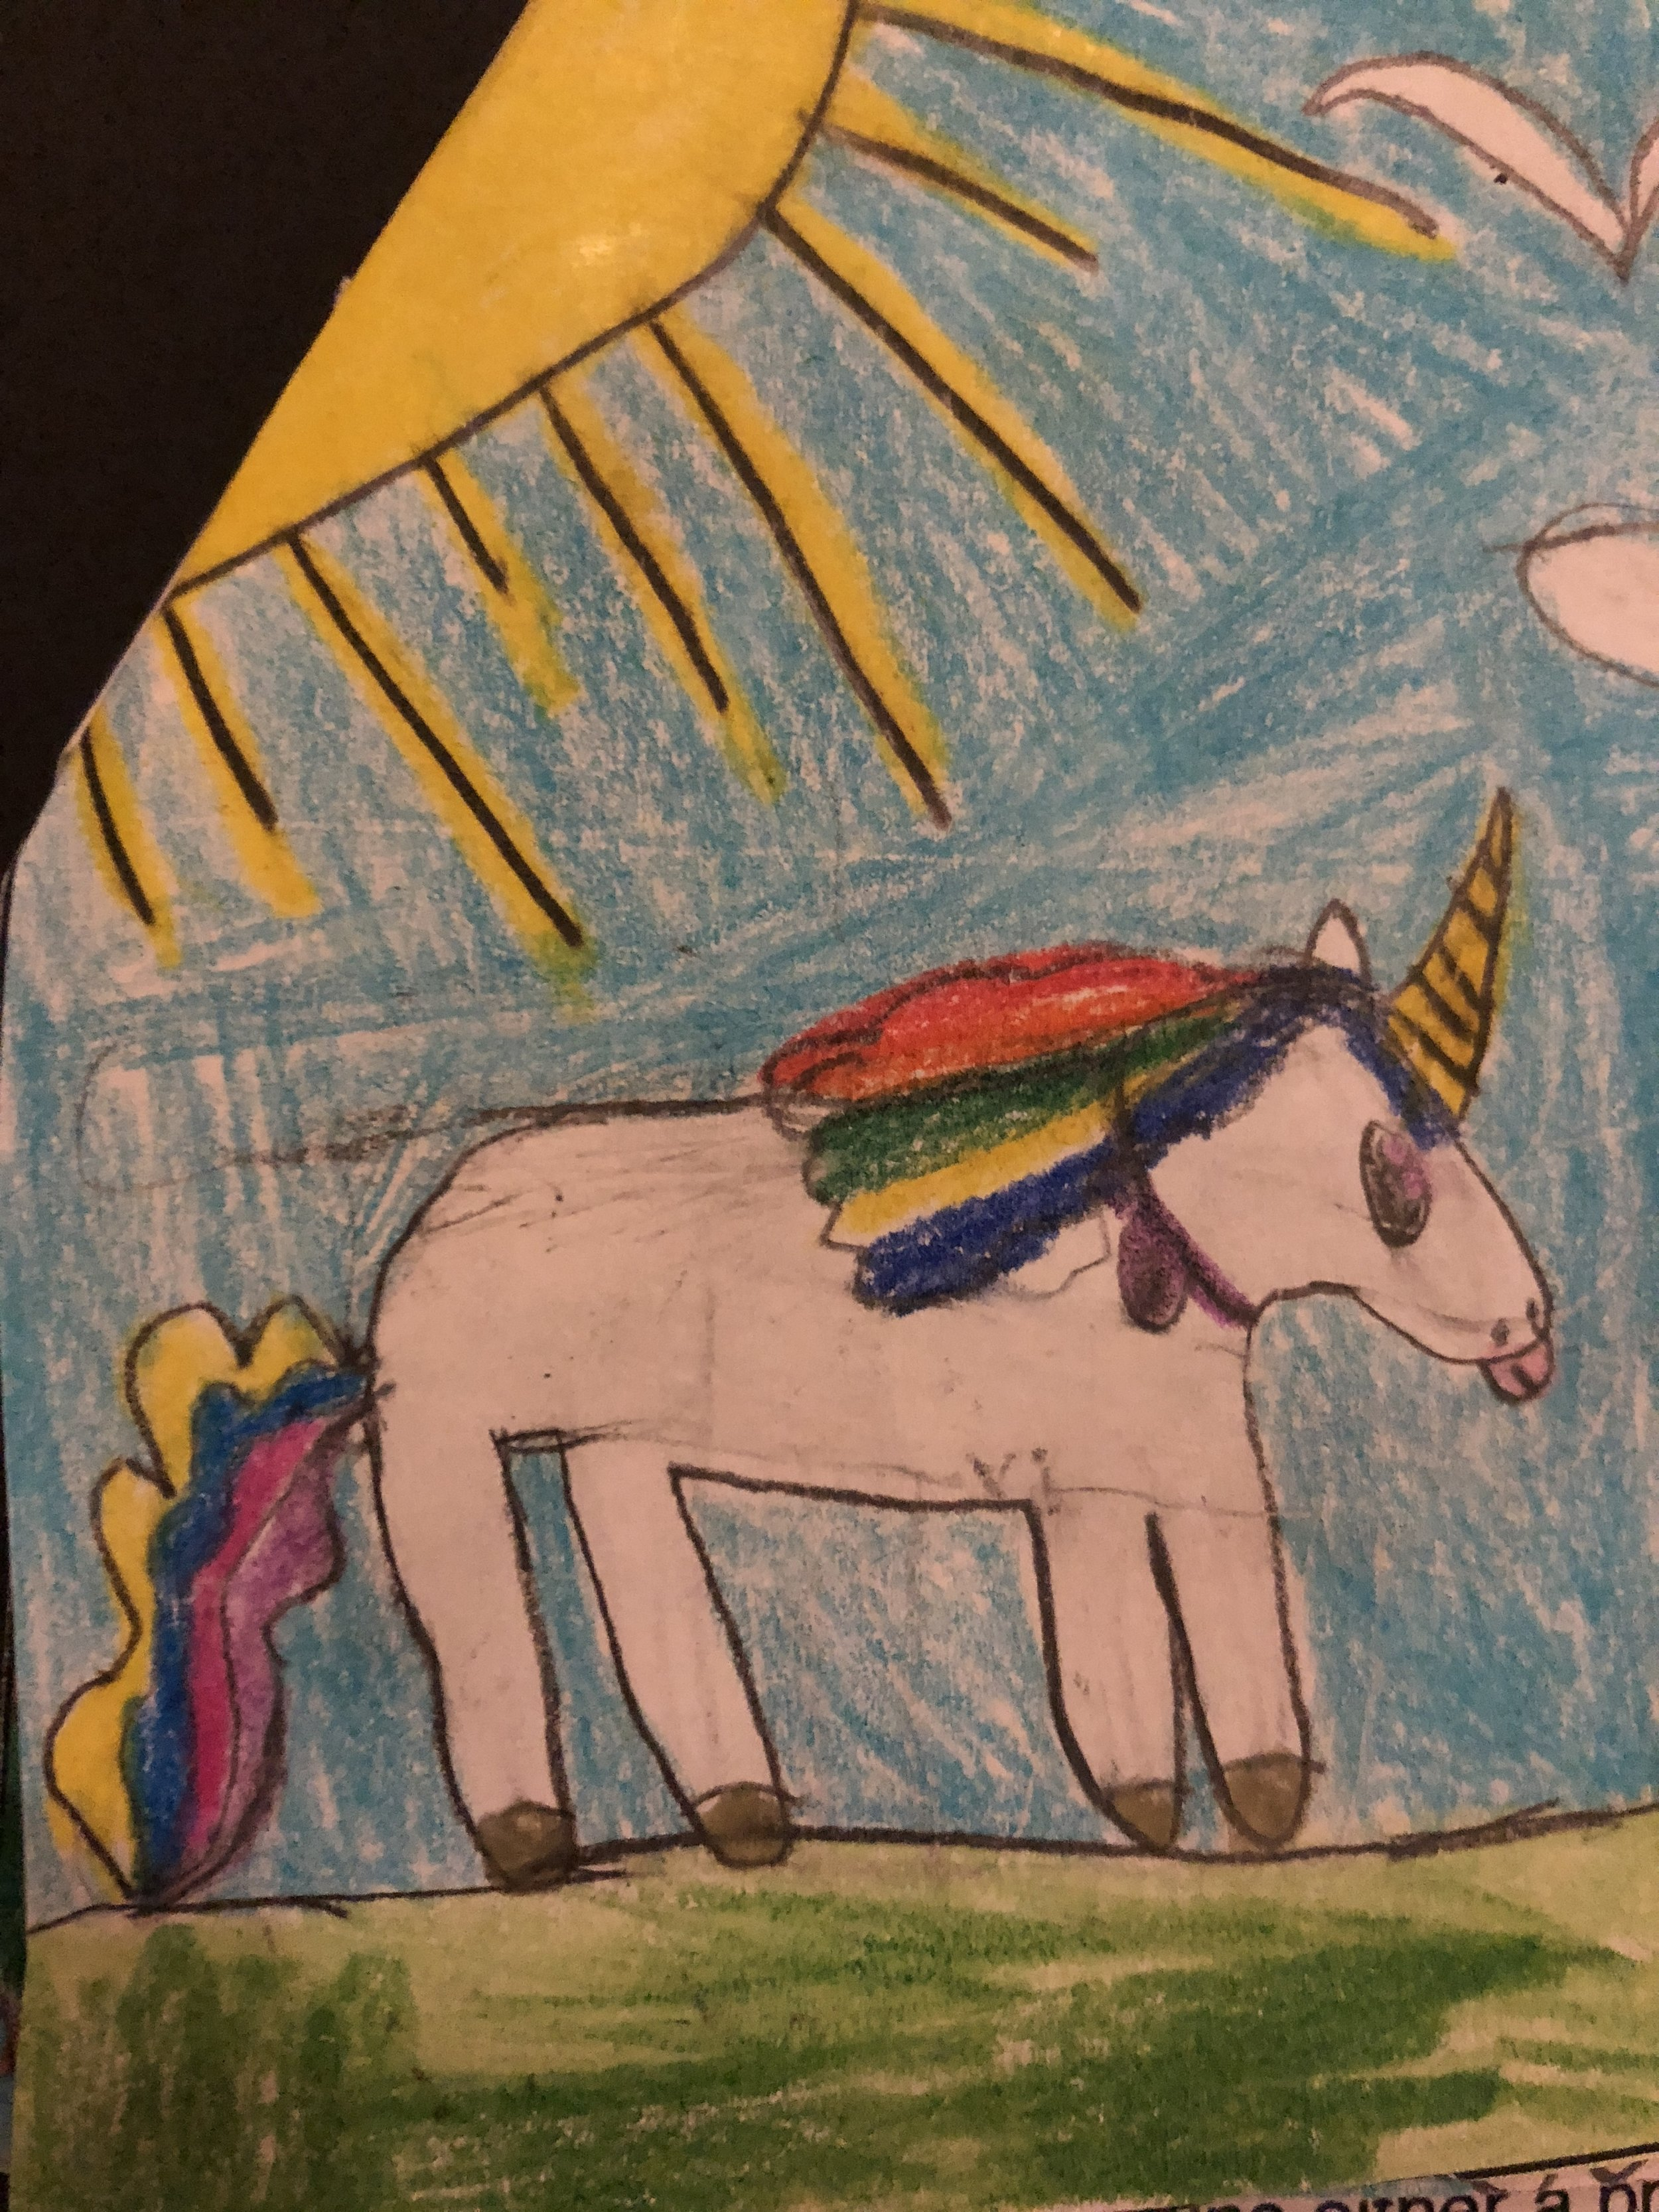 addison's original illustration for the unicorn design